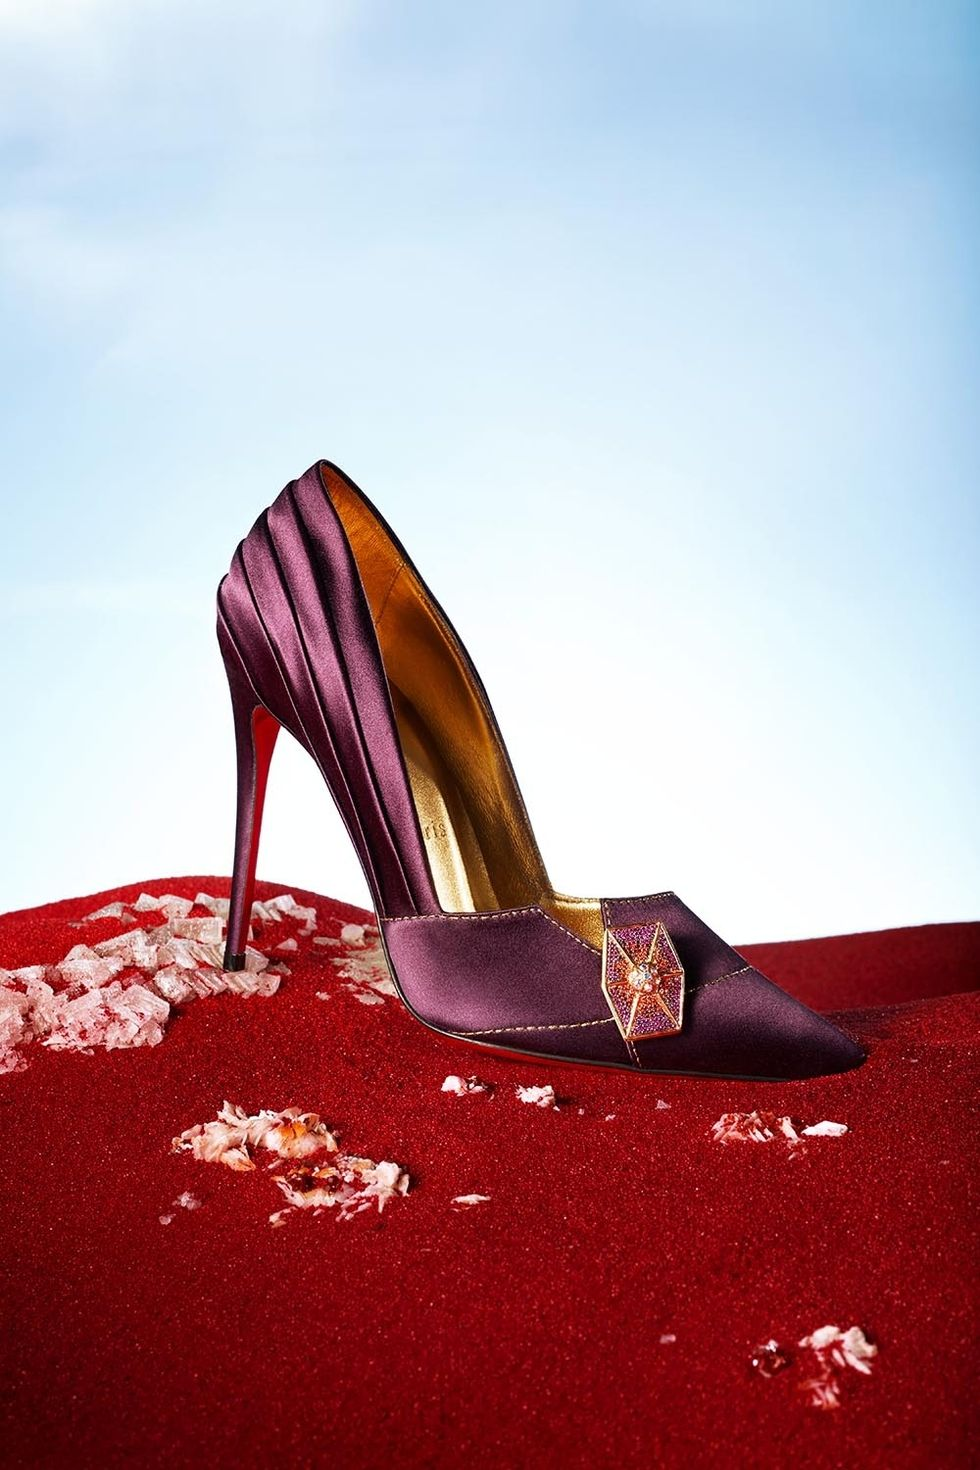 Vice Admiral Amilyn Holdo - This regally plum pump is inspired by the Vice Admiral who rocks lavender hair in the film. The drapery on the shoe mimics the fabric of her costume.